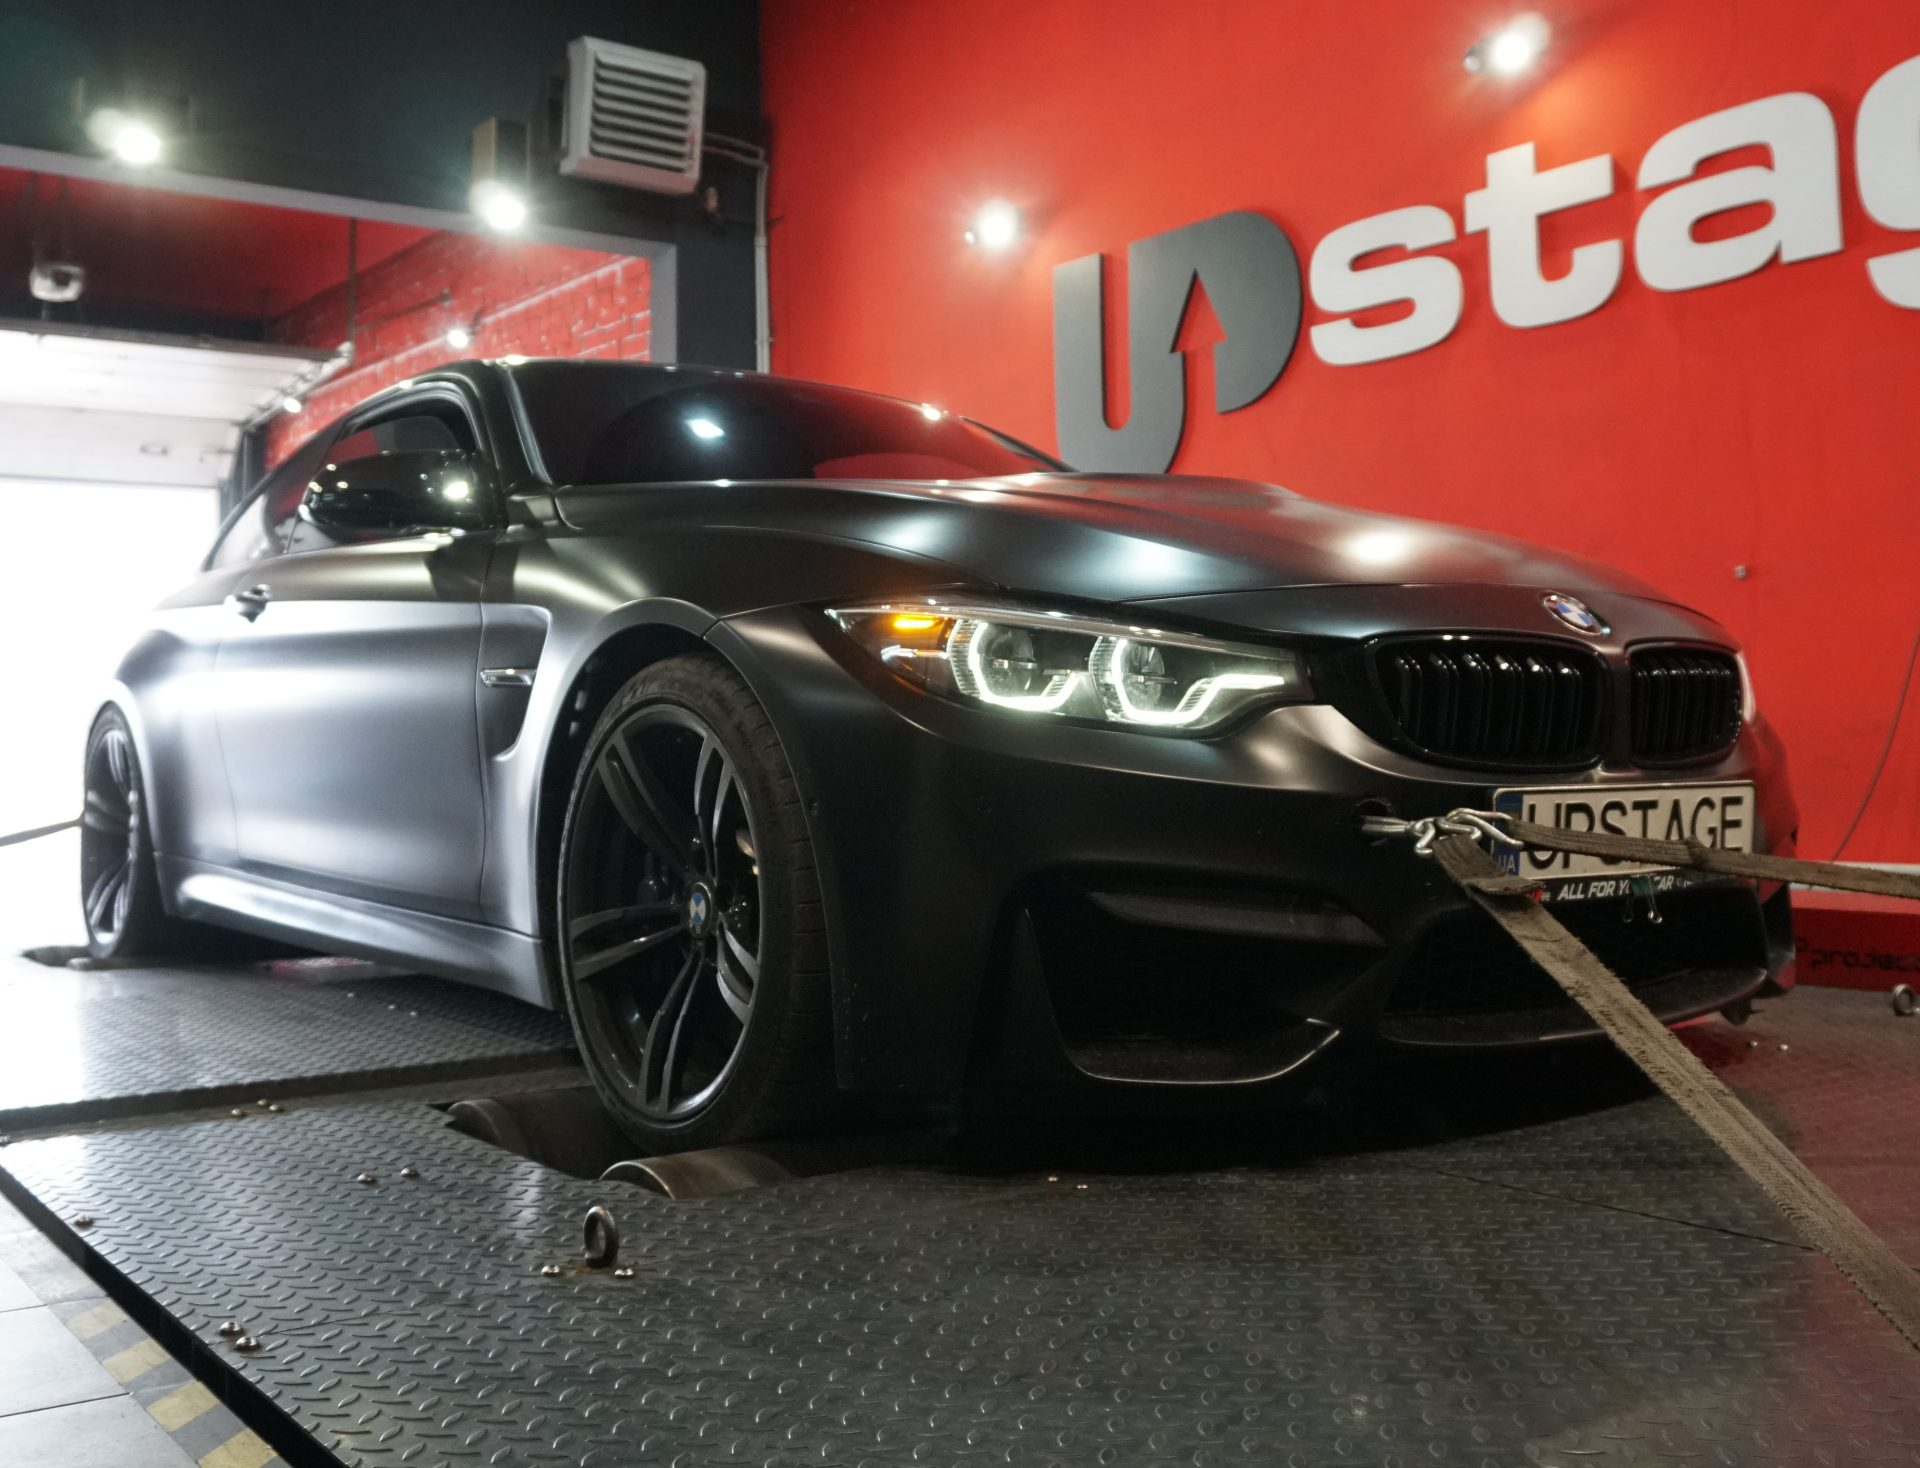 chip-tuning-bmw-m4-3.0t-stage1